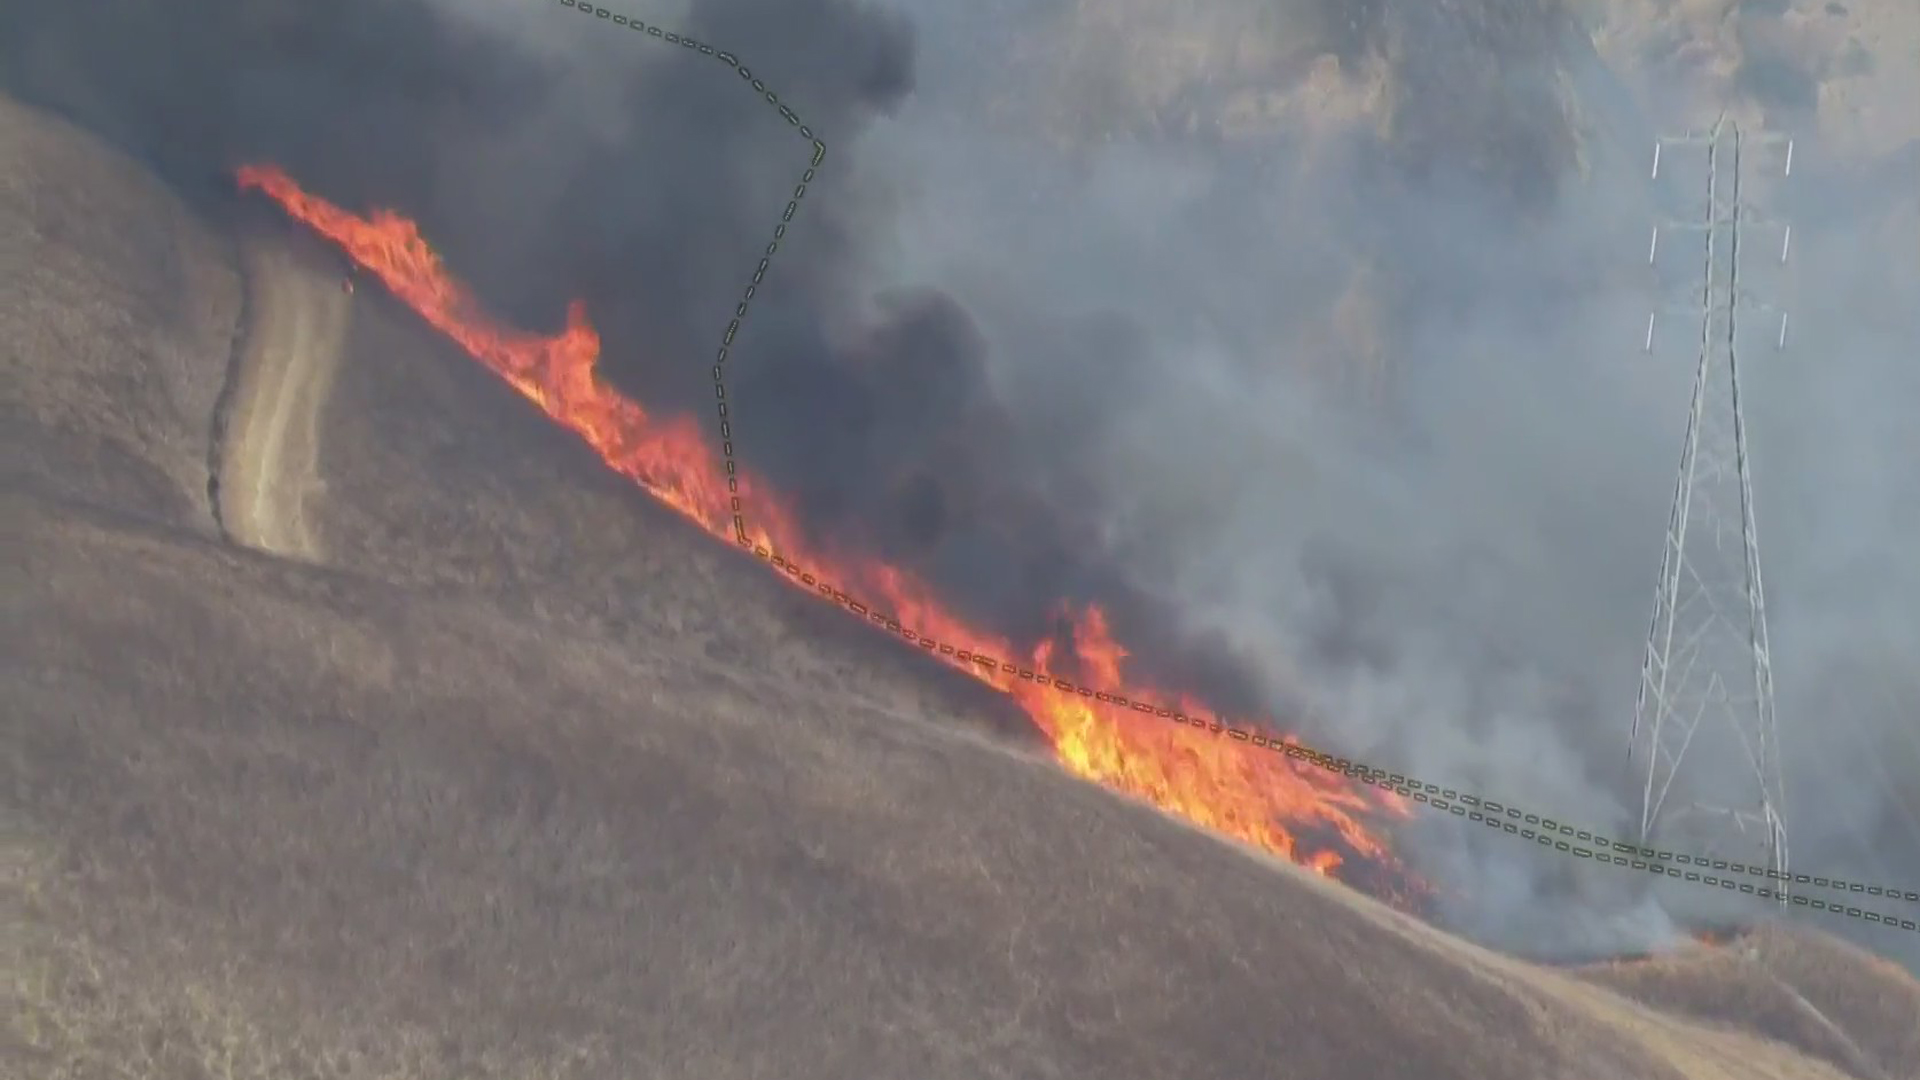 The Blue Ridge Fire in Yorba Linda was threatening power lines in the area on Oct. 26, 2020. (KTLA)